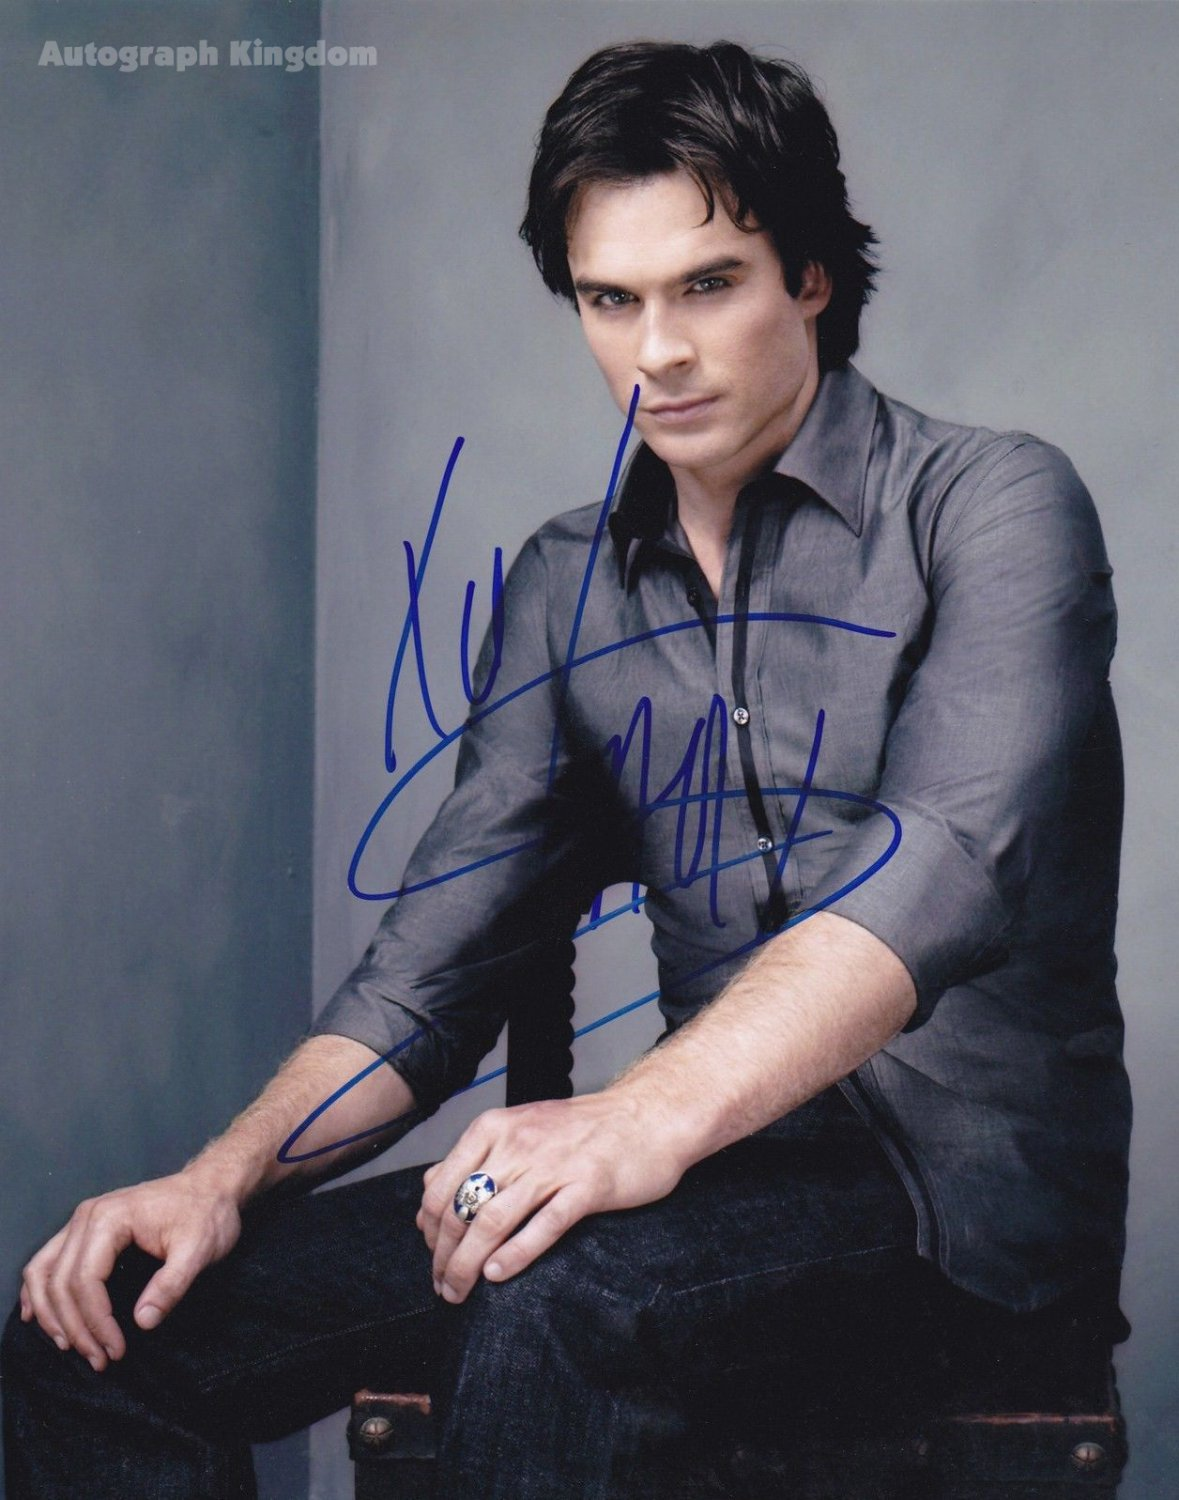 Ian Somerhalder / The Vampire Diaries Autographed Photo - (Ref:0486)